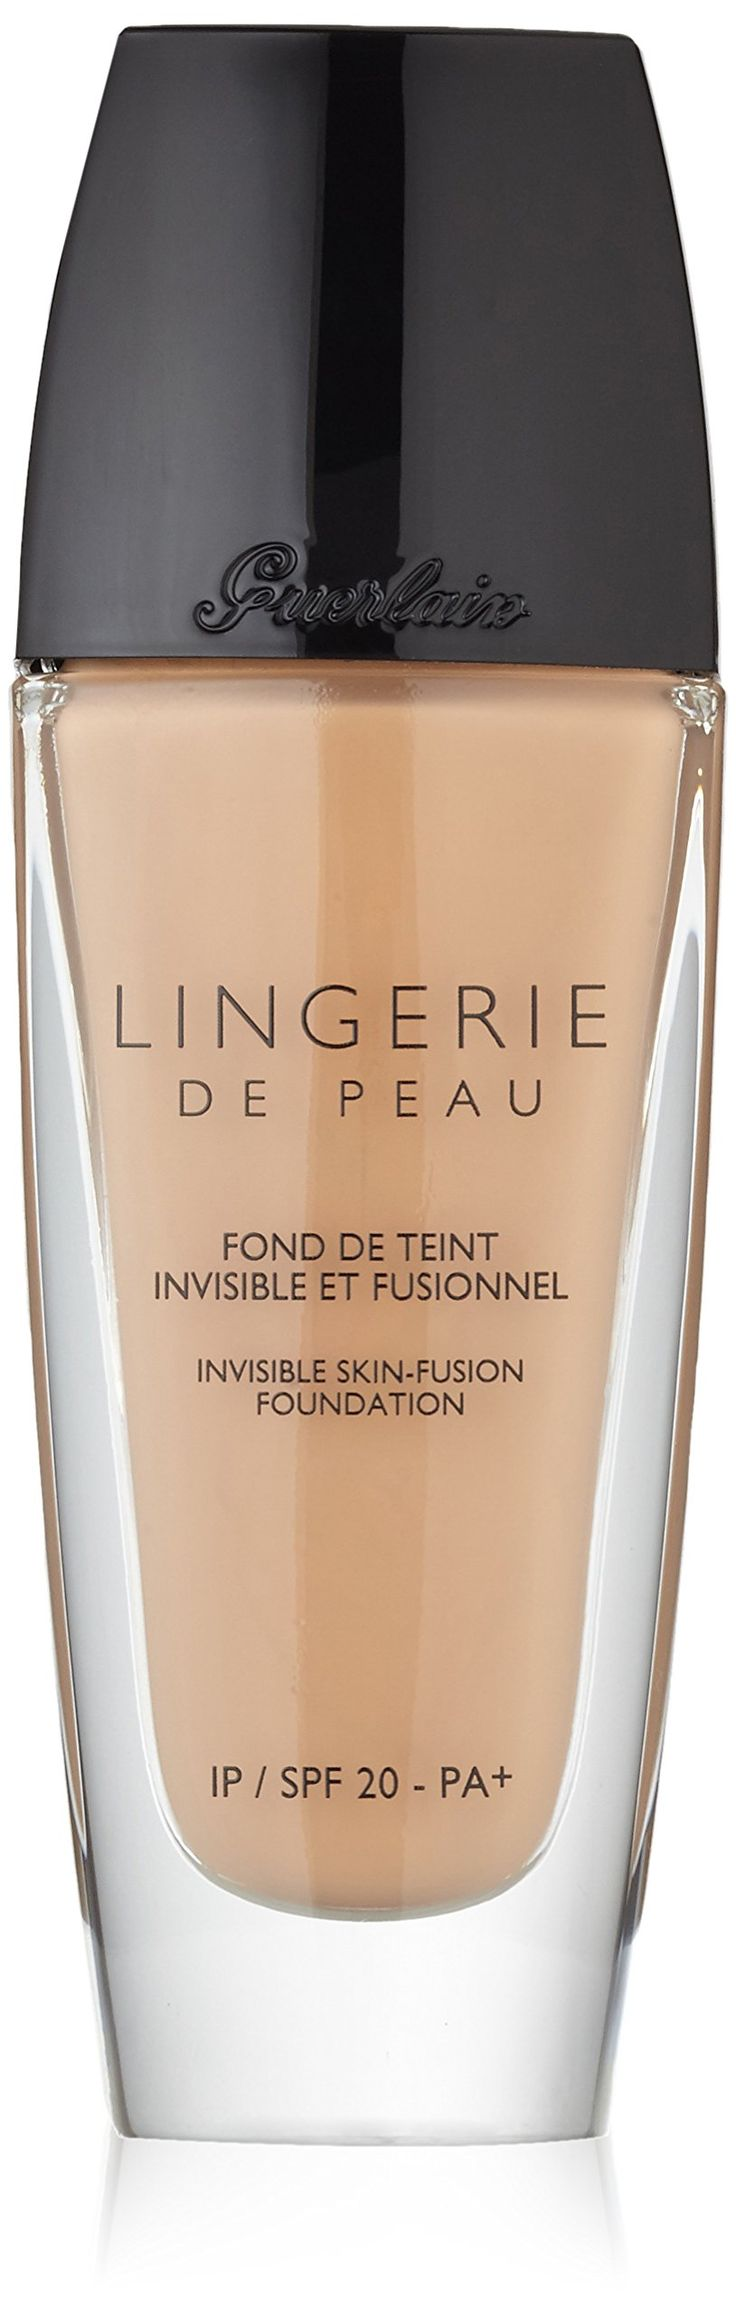 Guerlain Lingerie de Peau Invisible Skin Fusion Foundation, SPF 20 Pa+, # 04 Beige Moyen, 1 Ounce. Lingerie de Peau Invisible Skin Fusion Foundation SPF 20 PA+ - # 04 Beige Moyen was launched by the design house of Guerlain. It is recommended for normal use. Lingerie de peau invisible skin fusion foundation spf 20 pa+ - # 04 beige moyen by guerlain for women - 1 ounce. Foundation.